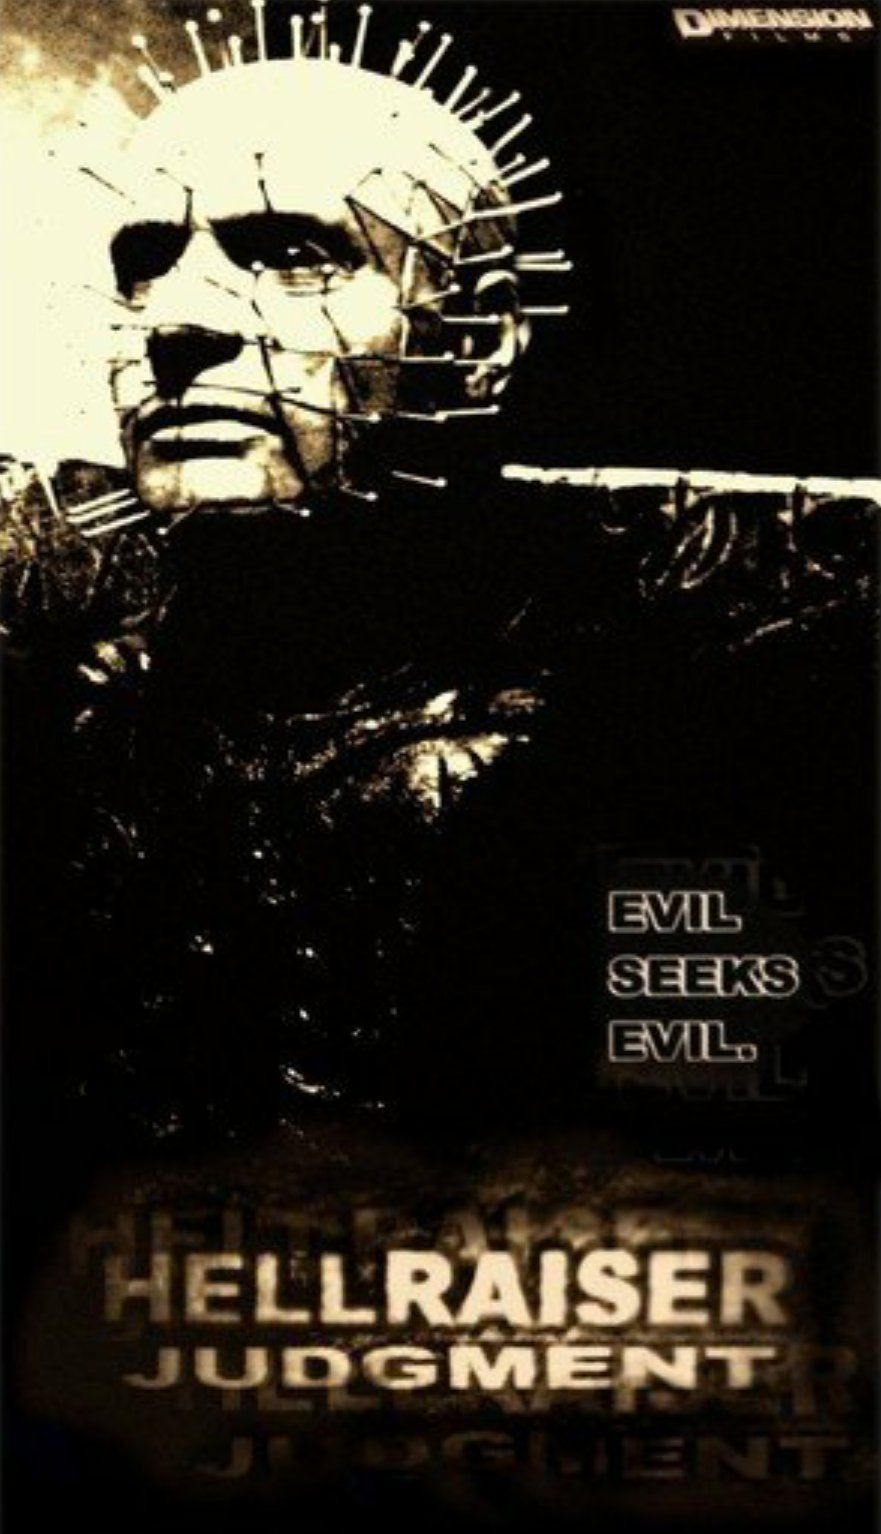 Affiche Hellraiser Judgment